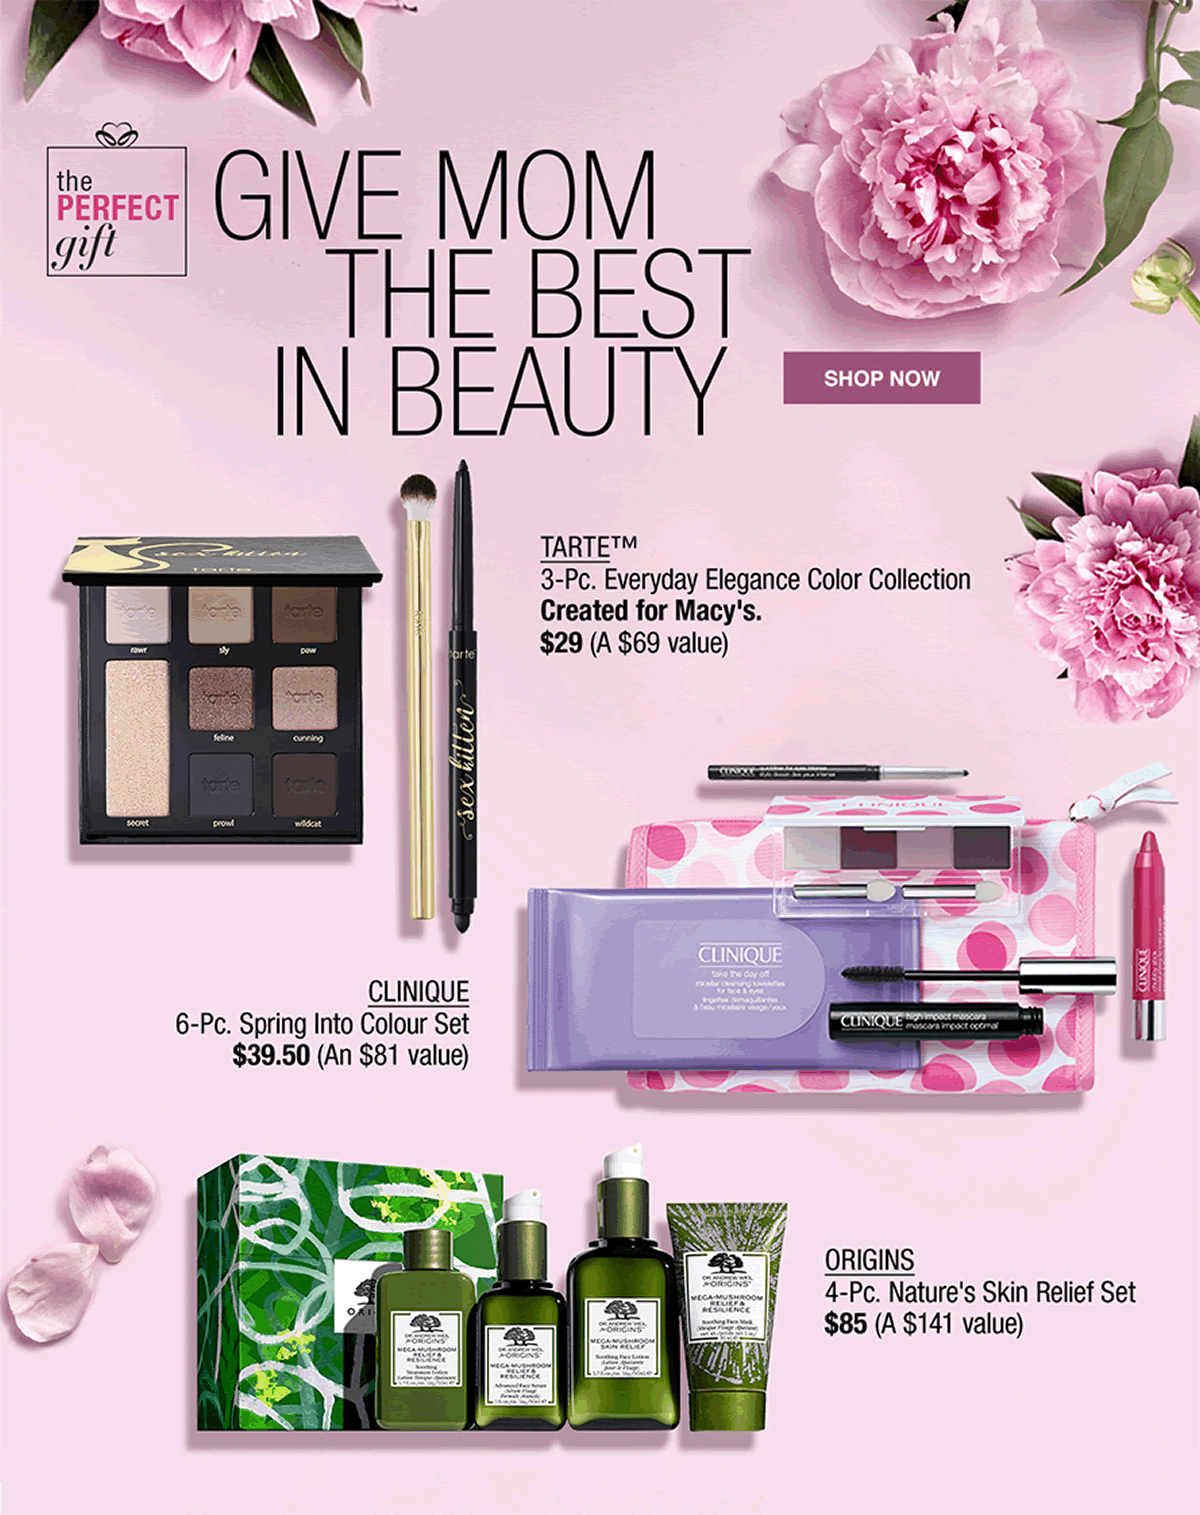 The Perfect gift, give Mom the Best in Beauty, Shop now, Tarte 3-pieces Everyday Elegance color collection Created for Macy's $29 (A $69 value), Clinique 6 pieces Spring Into Color Set $39.50 (An $81 value), Origins 4 pieces Nature's Skin Relief Set $85